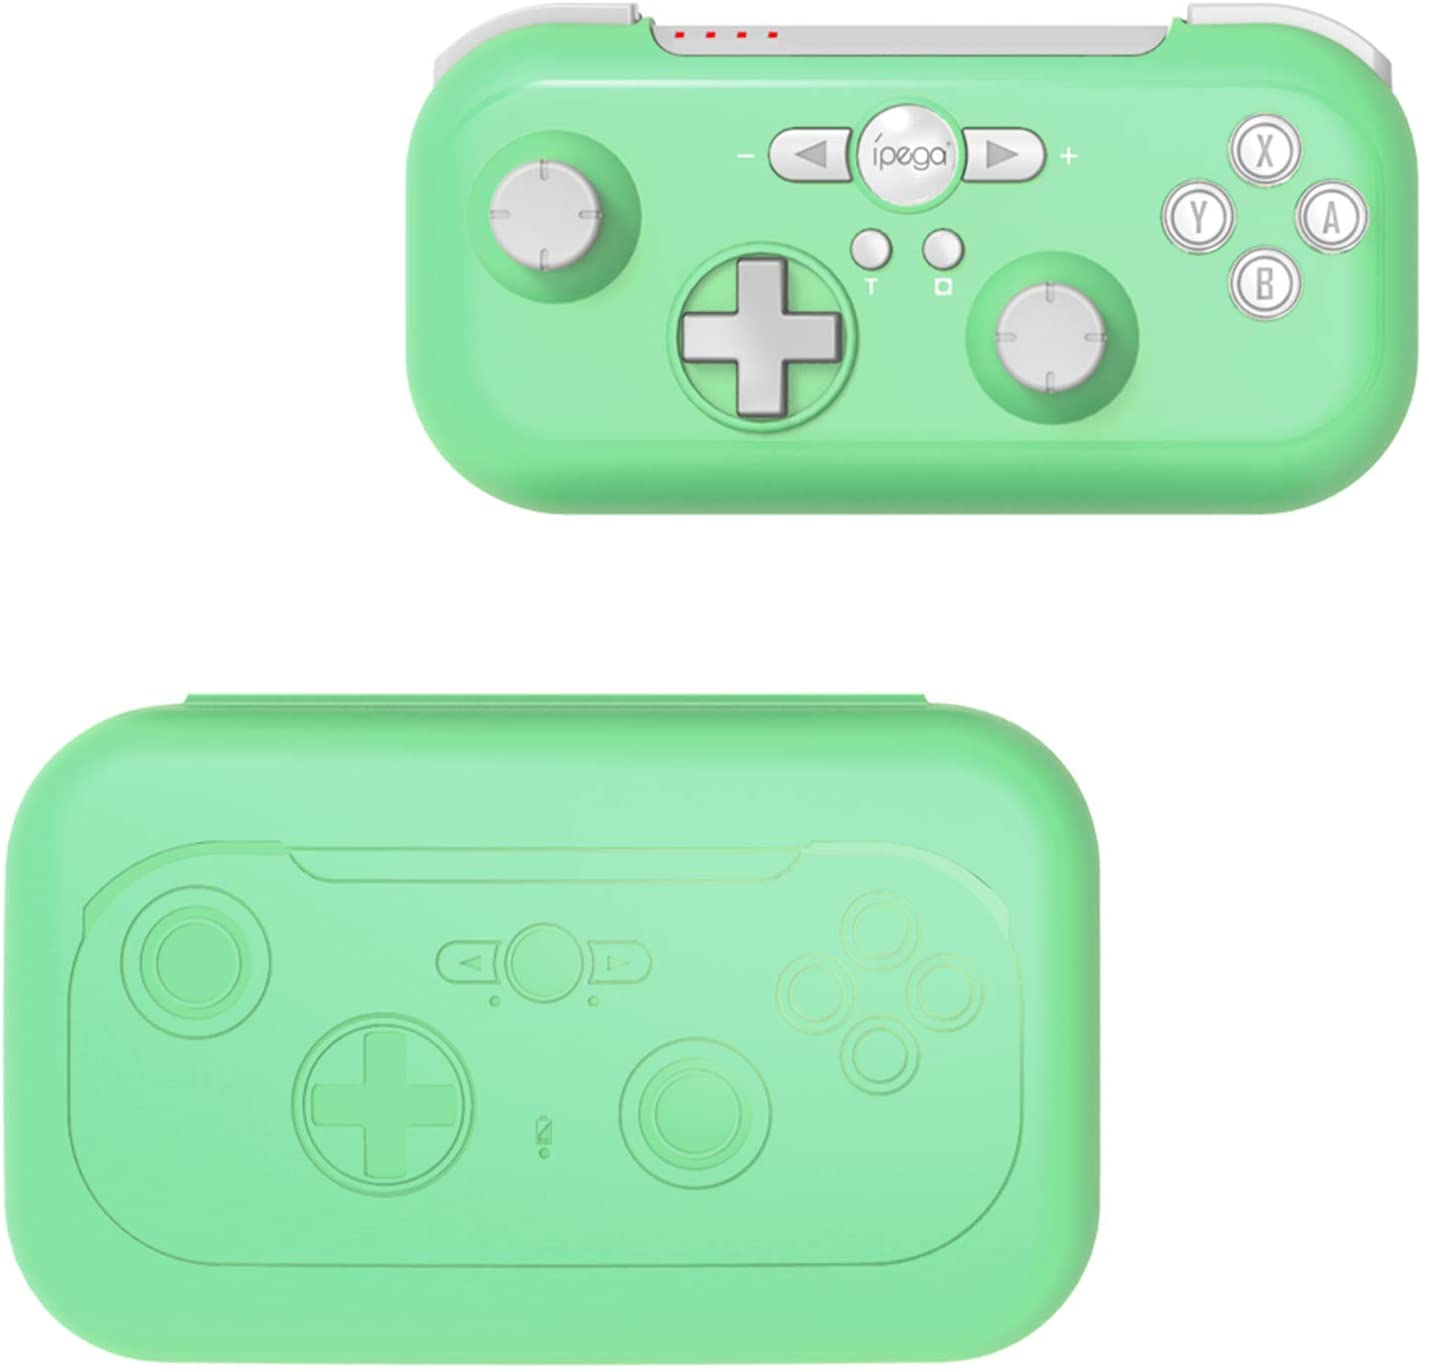 FYOUNG Controller Gamepad Compatible for Nintendo Switch/Switch Lite, Controller for Switch with Turbo Dual Vibration & Motion Control, Multi Functional Gamepad for Nintendo Games (Light Green)